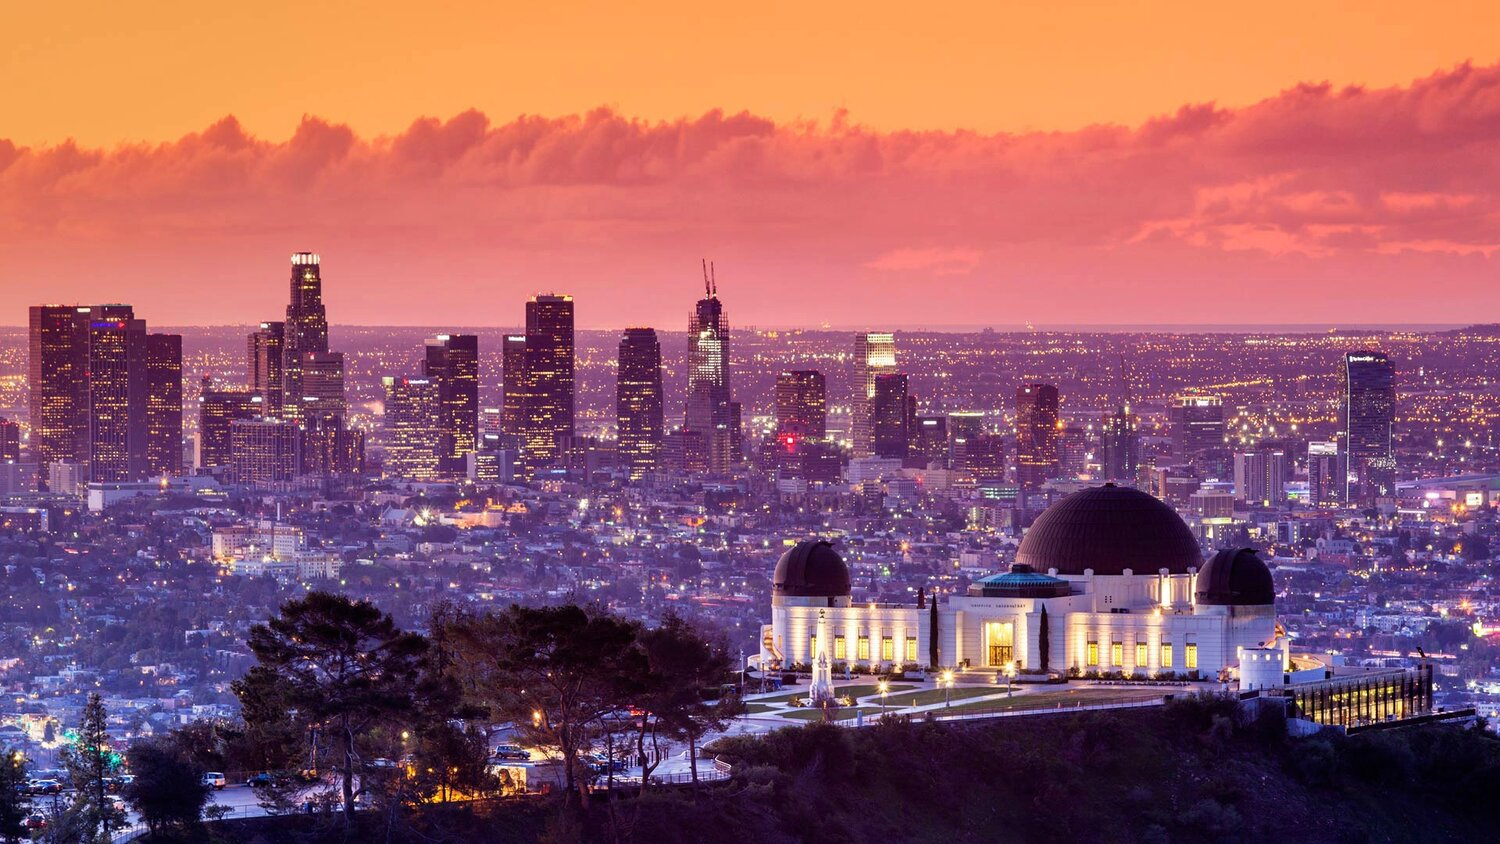 Founded in 2018, BioscienceLA is an innovation catalyst for life sciences and health innovation in the greater LA region, creating more opportunities